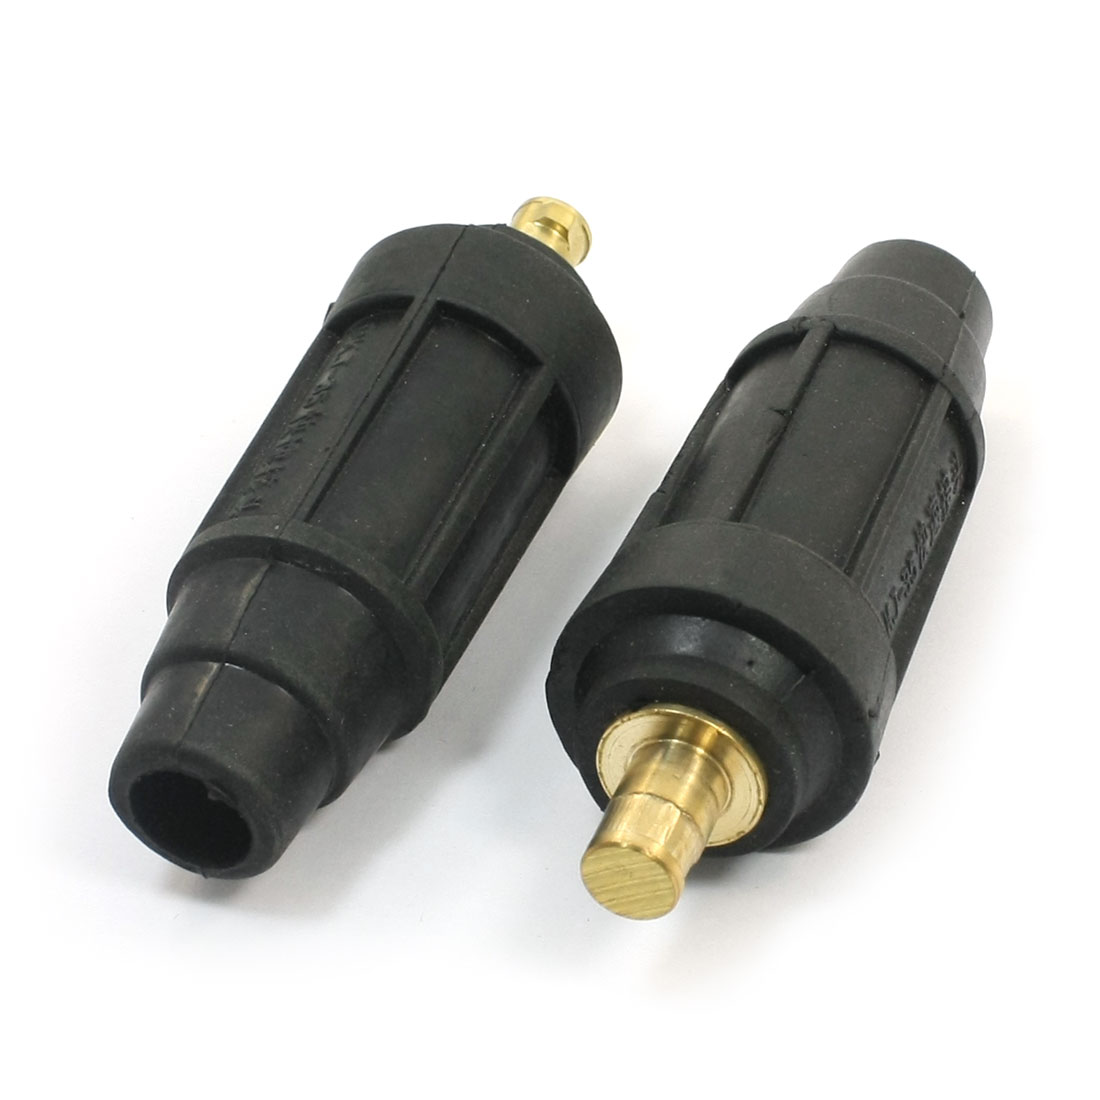 2pcs Plastic Coated 160-250A Welding Cable Connector Plug Adapter Fitting